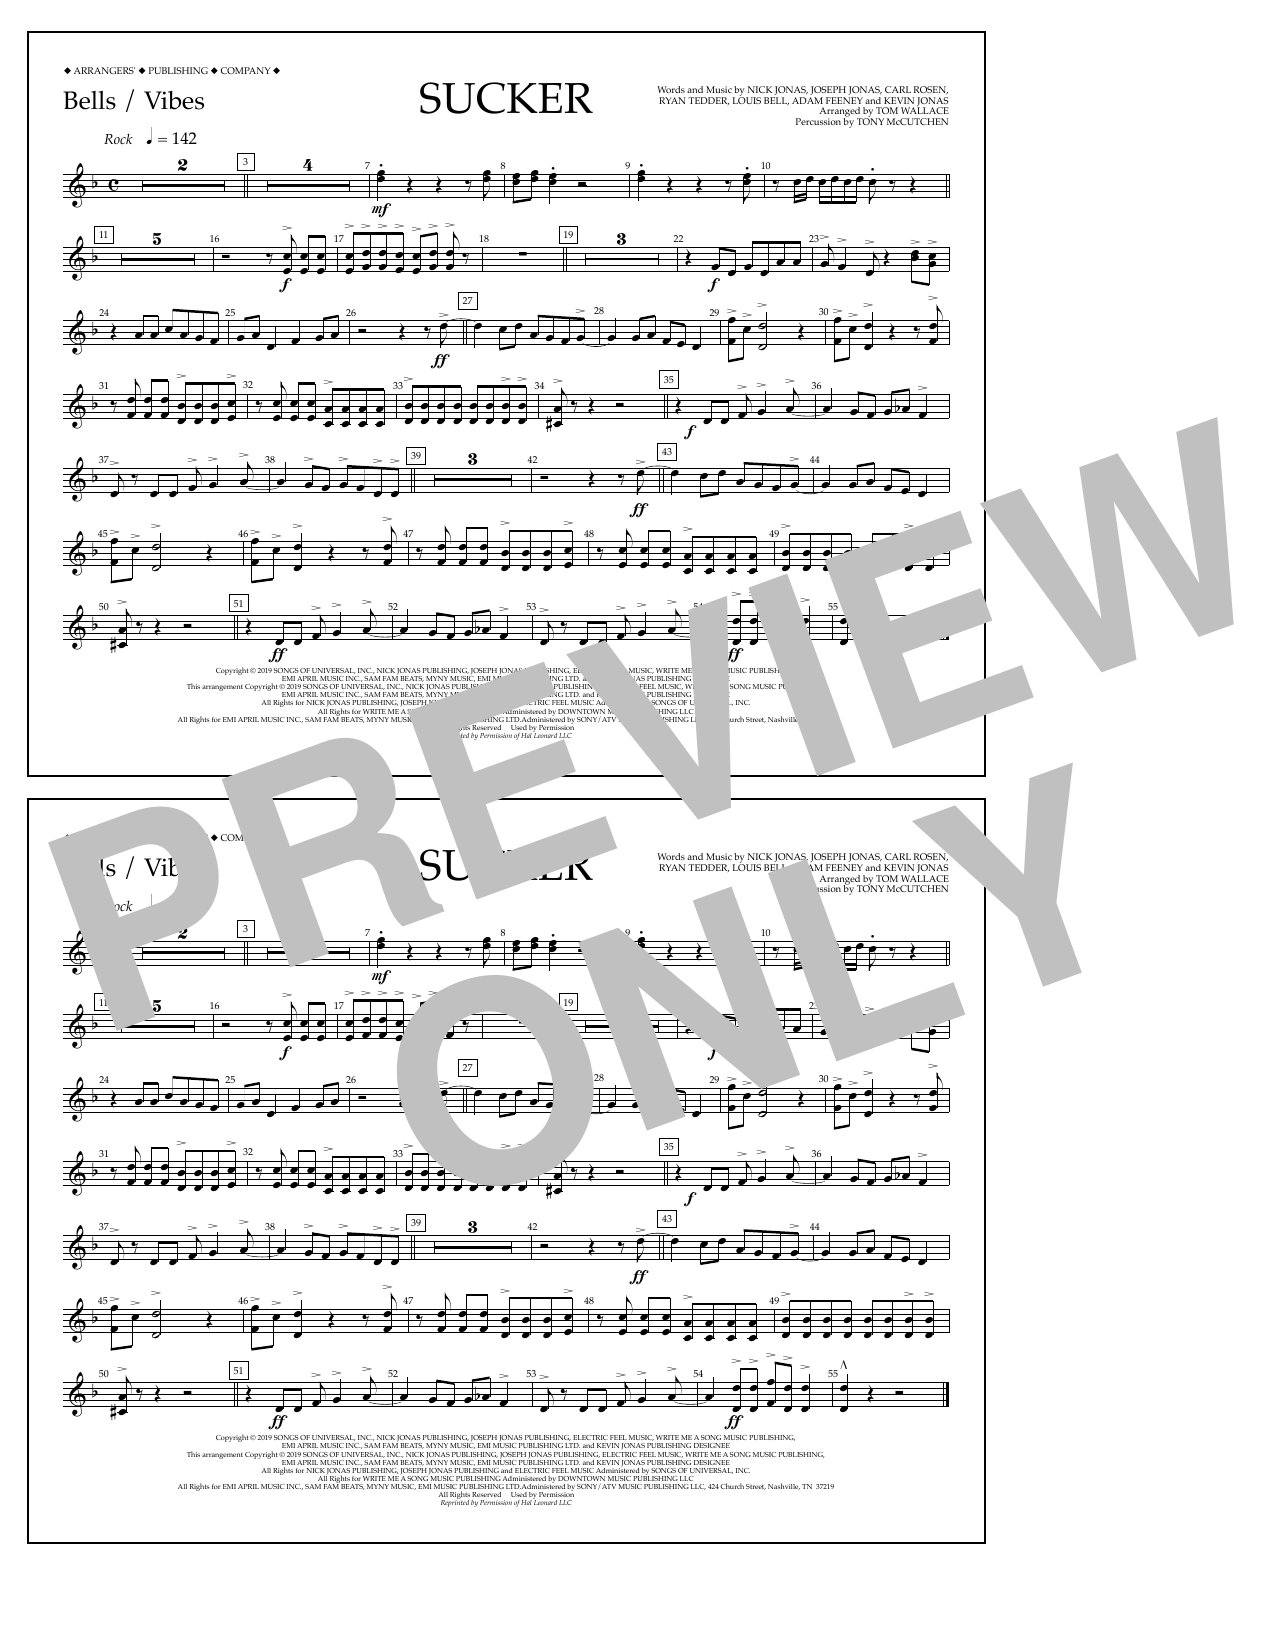 Jonas Brothers Sucker (arr. Tom Wallace) - Bells/Vibes sheet music notes and chords